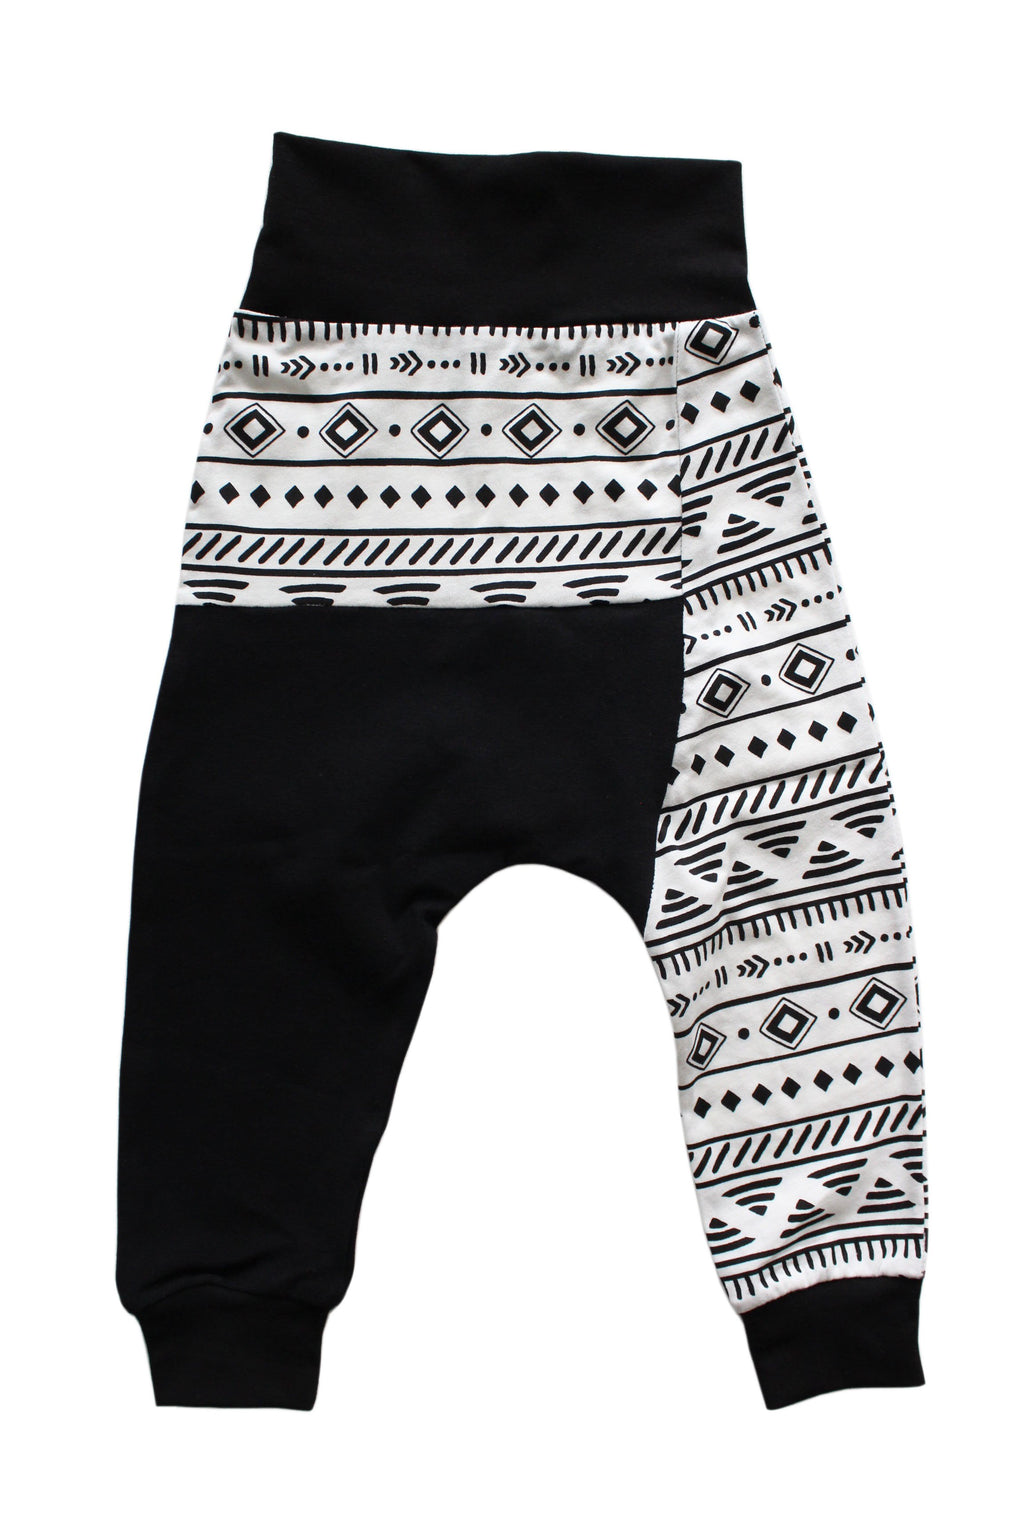 Two Tone Harems - Raven Black Tribal